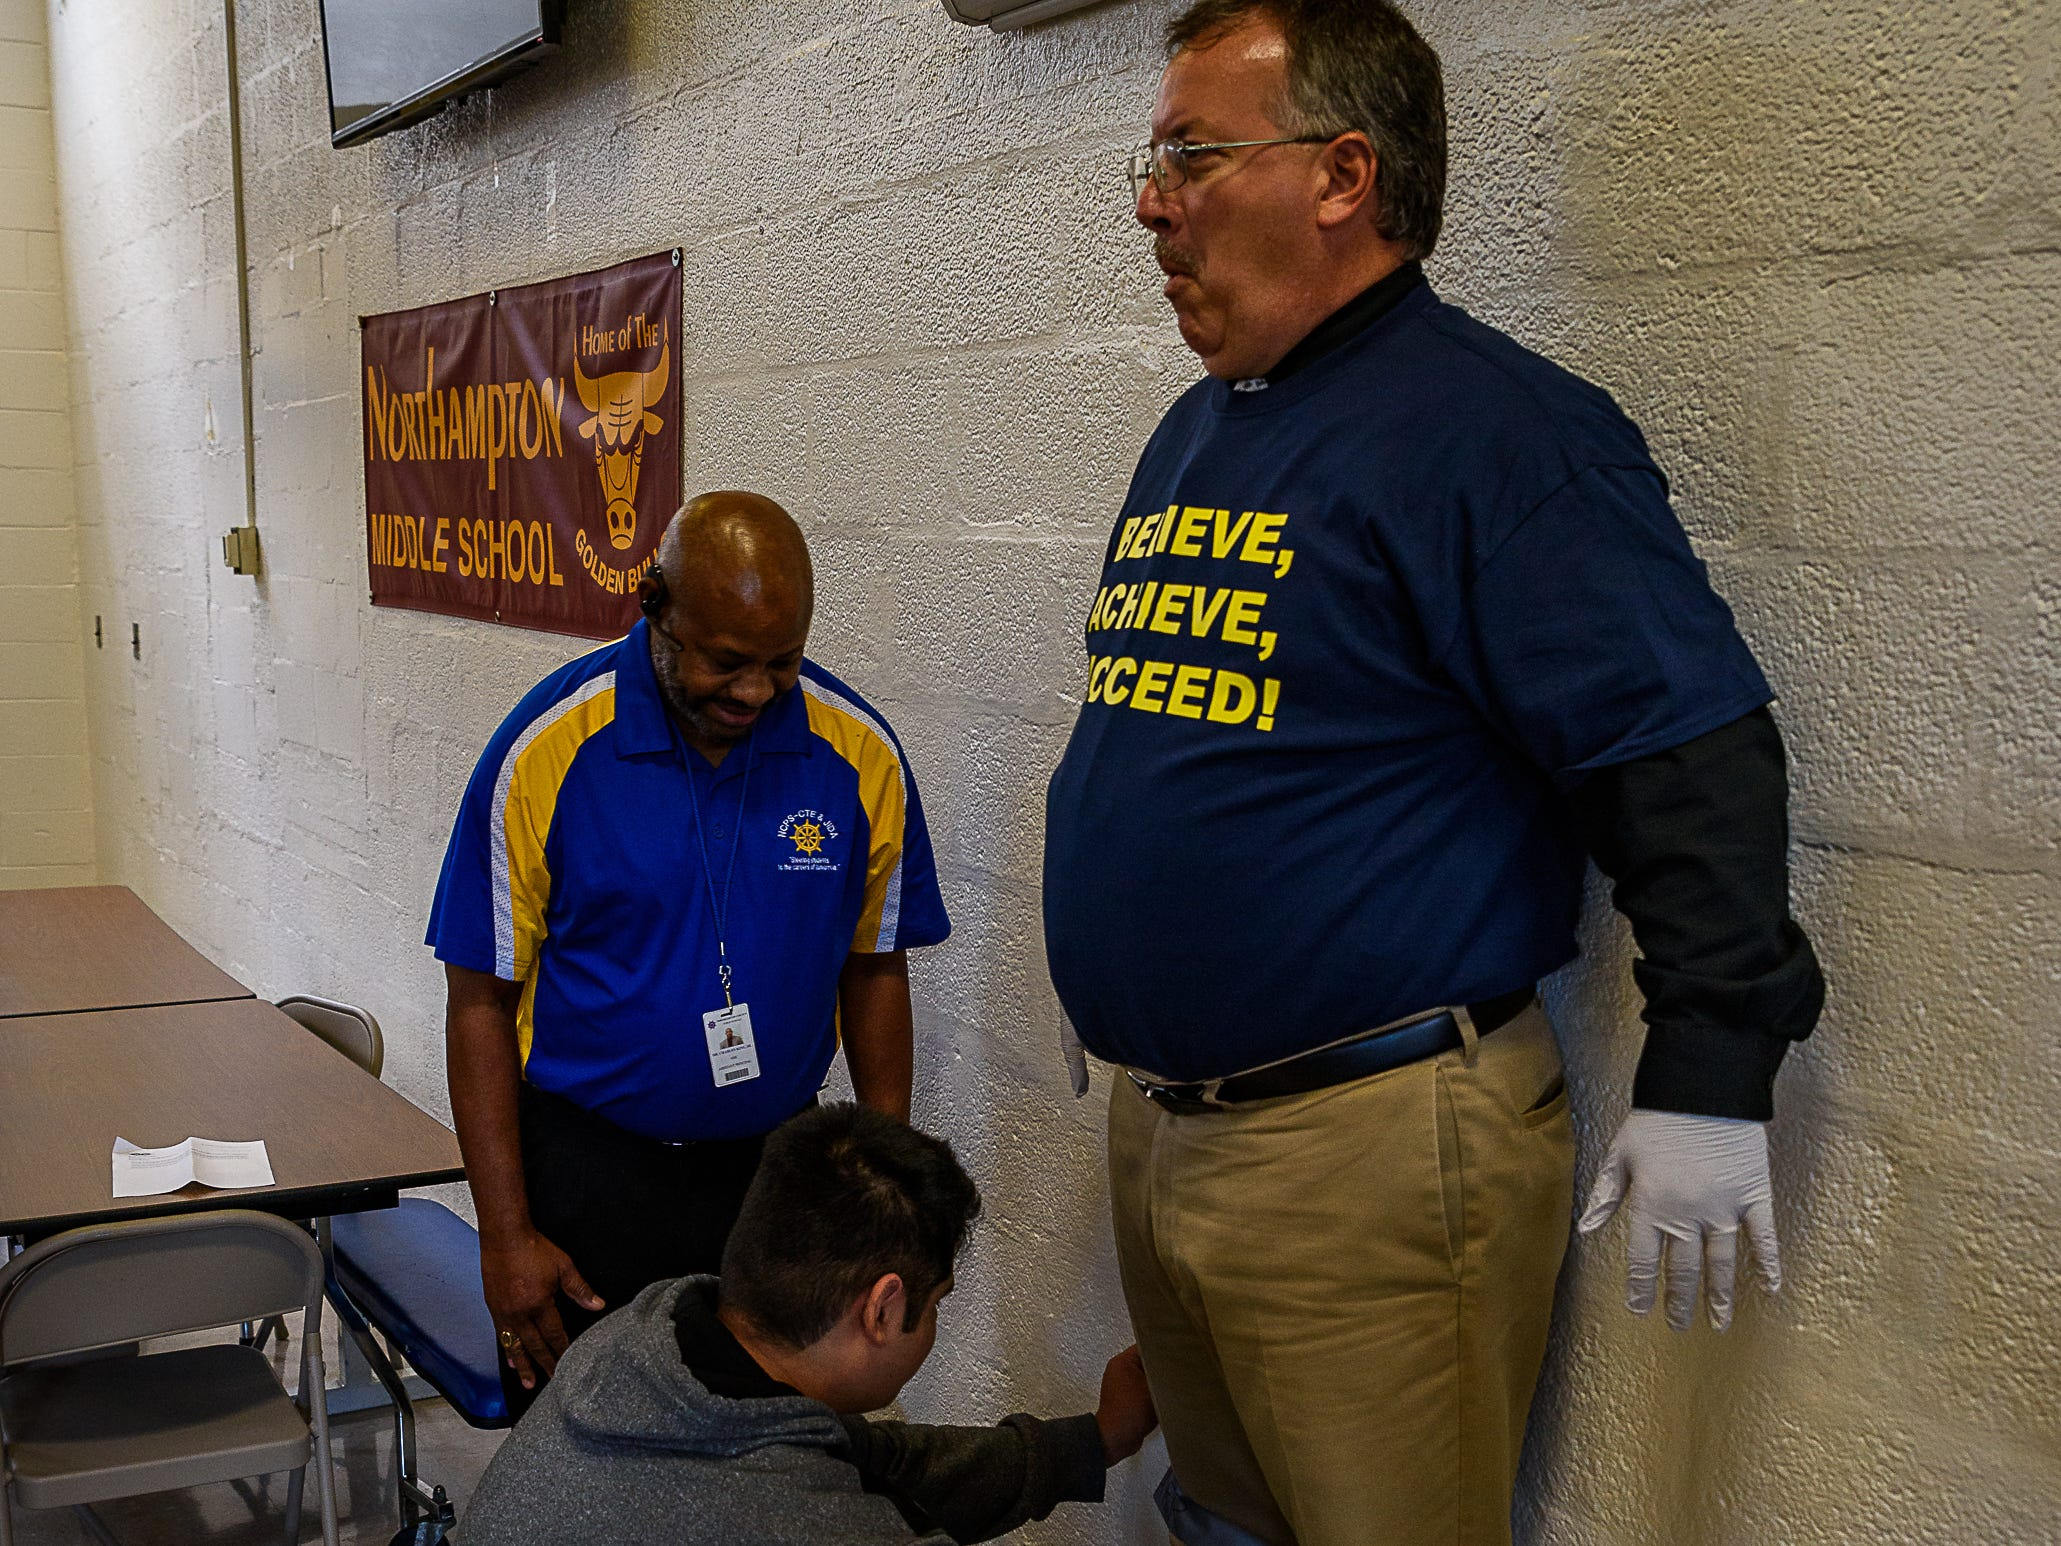 With some help from Assistant Principal Charles King, the first student starts the process of taping Principal Mike Myers to a wall at Northampton High School.